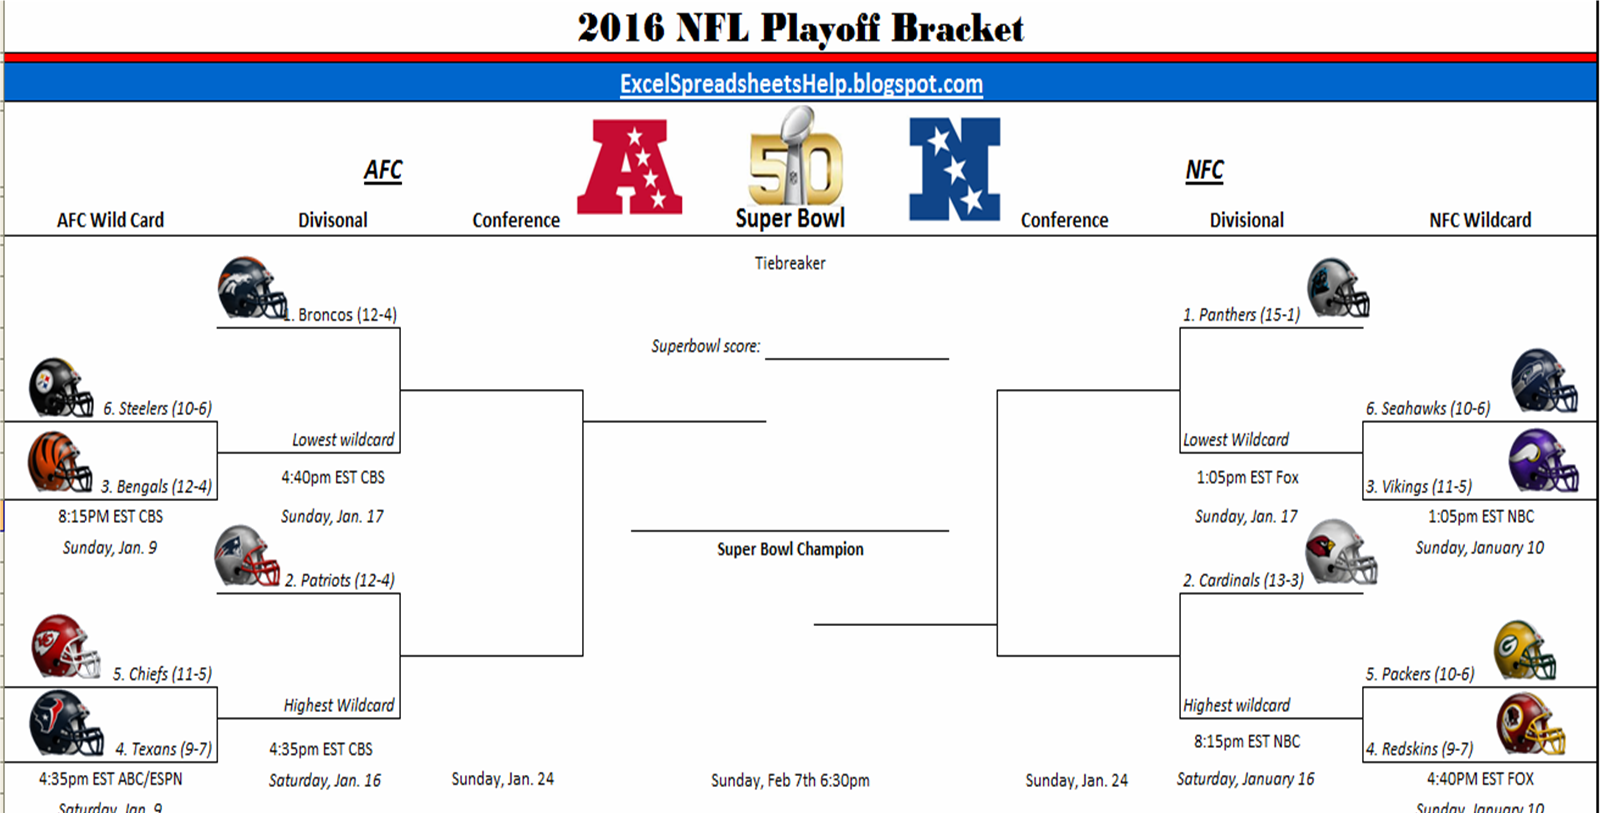 Exceptional image inside nfl playoff bracket printable